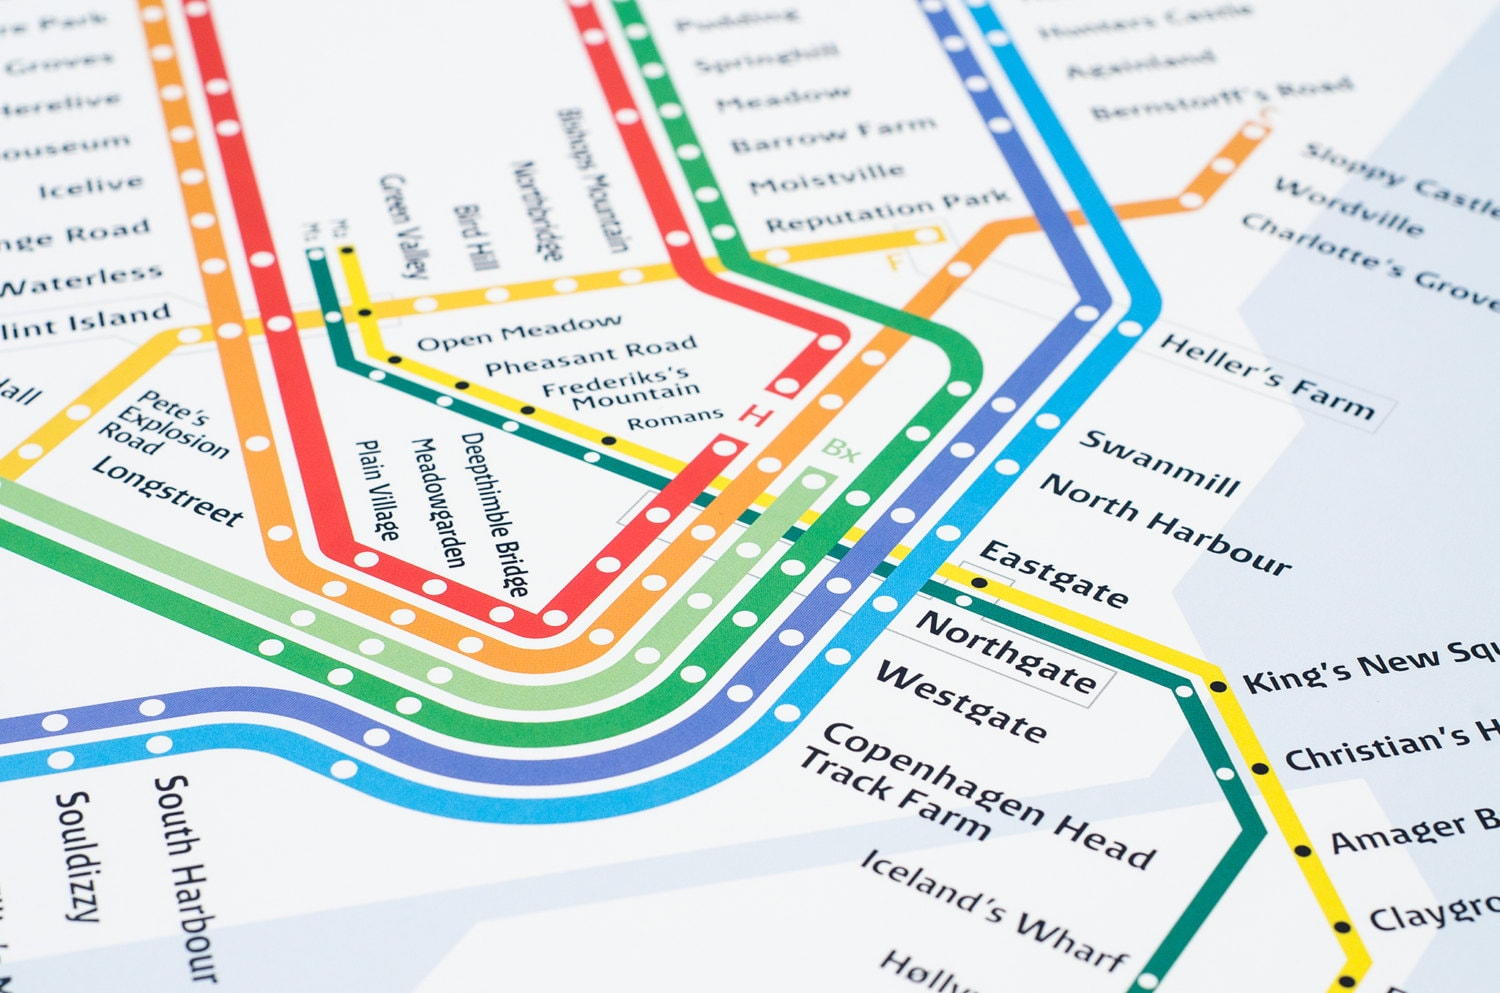 Copenhagen S Train Metro Map Literal English Translation Etsy